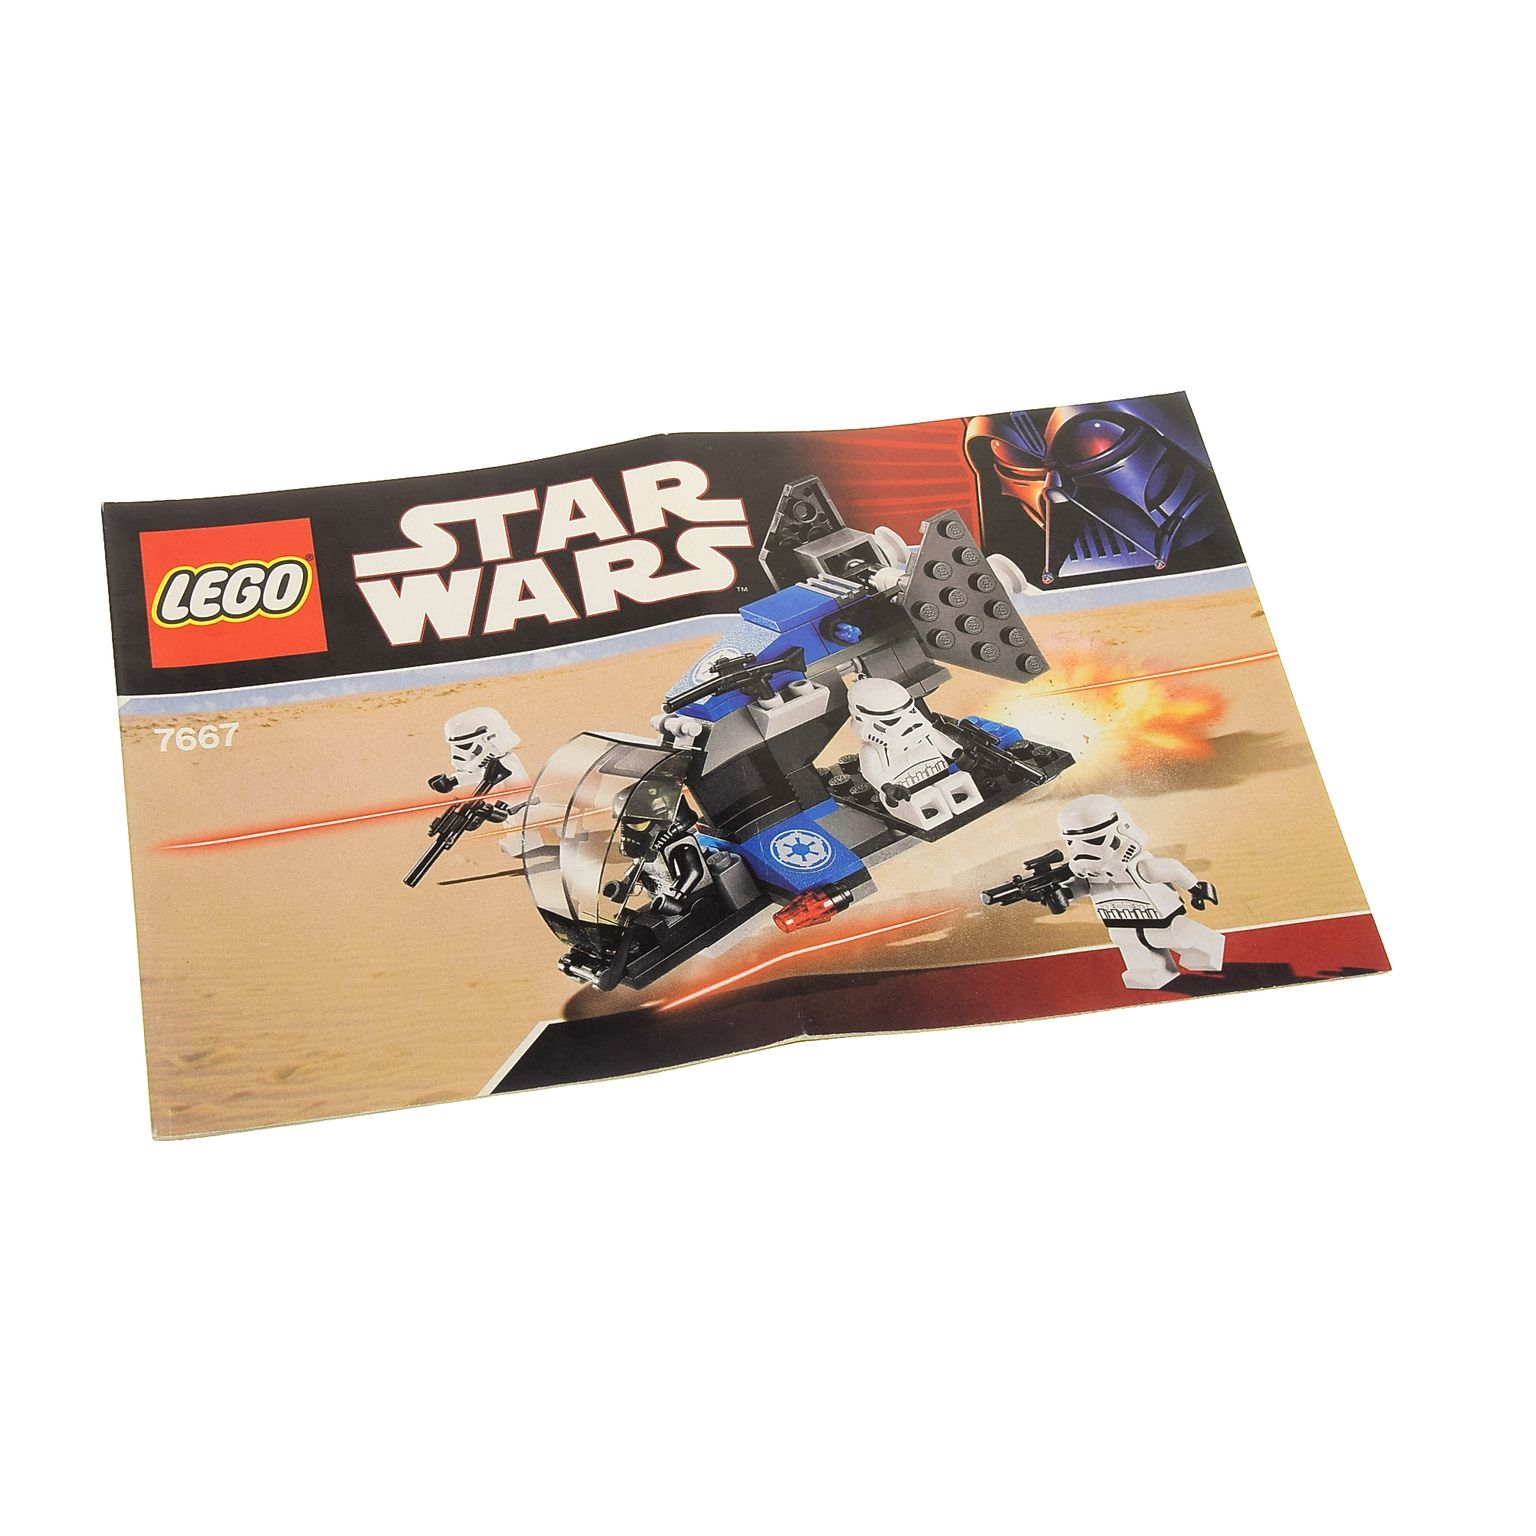 1 X Lego Brick Instructions For Set Star Wars Expanded Universe